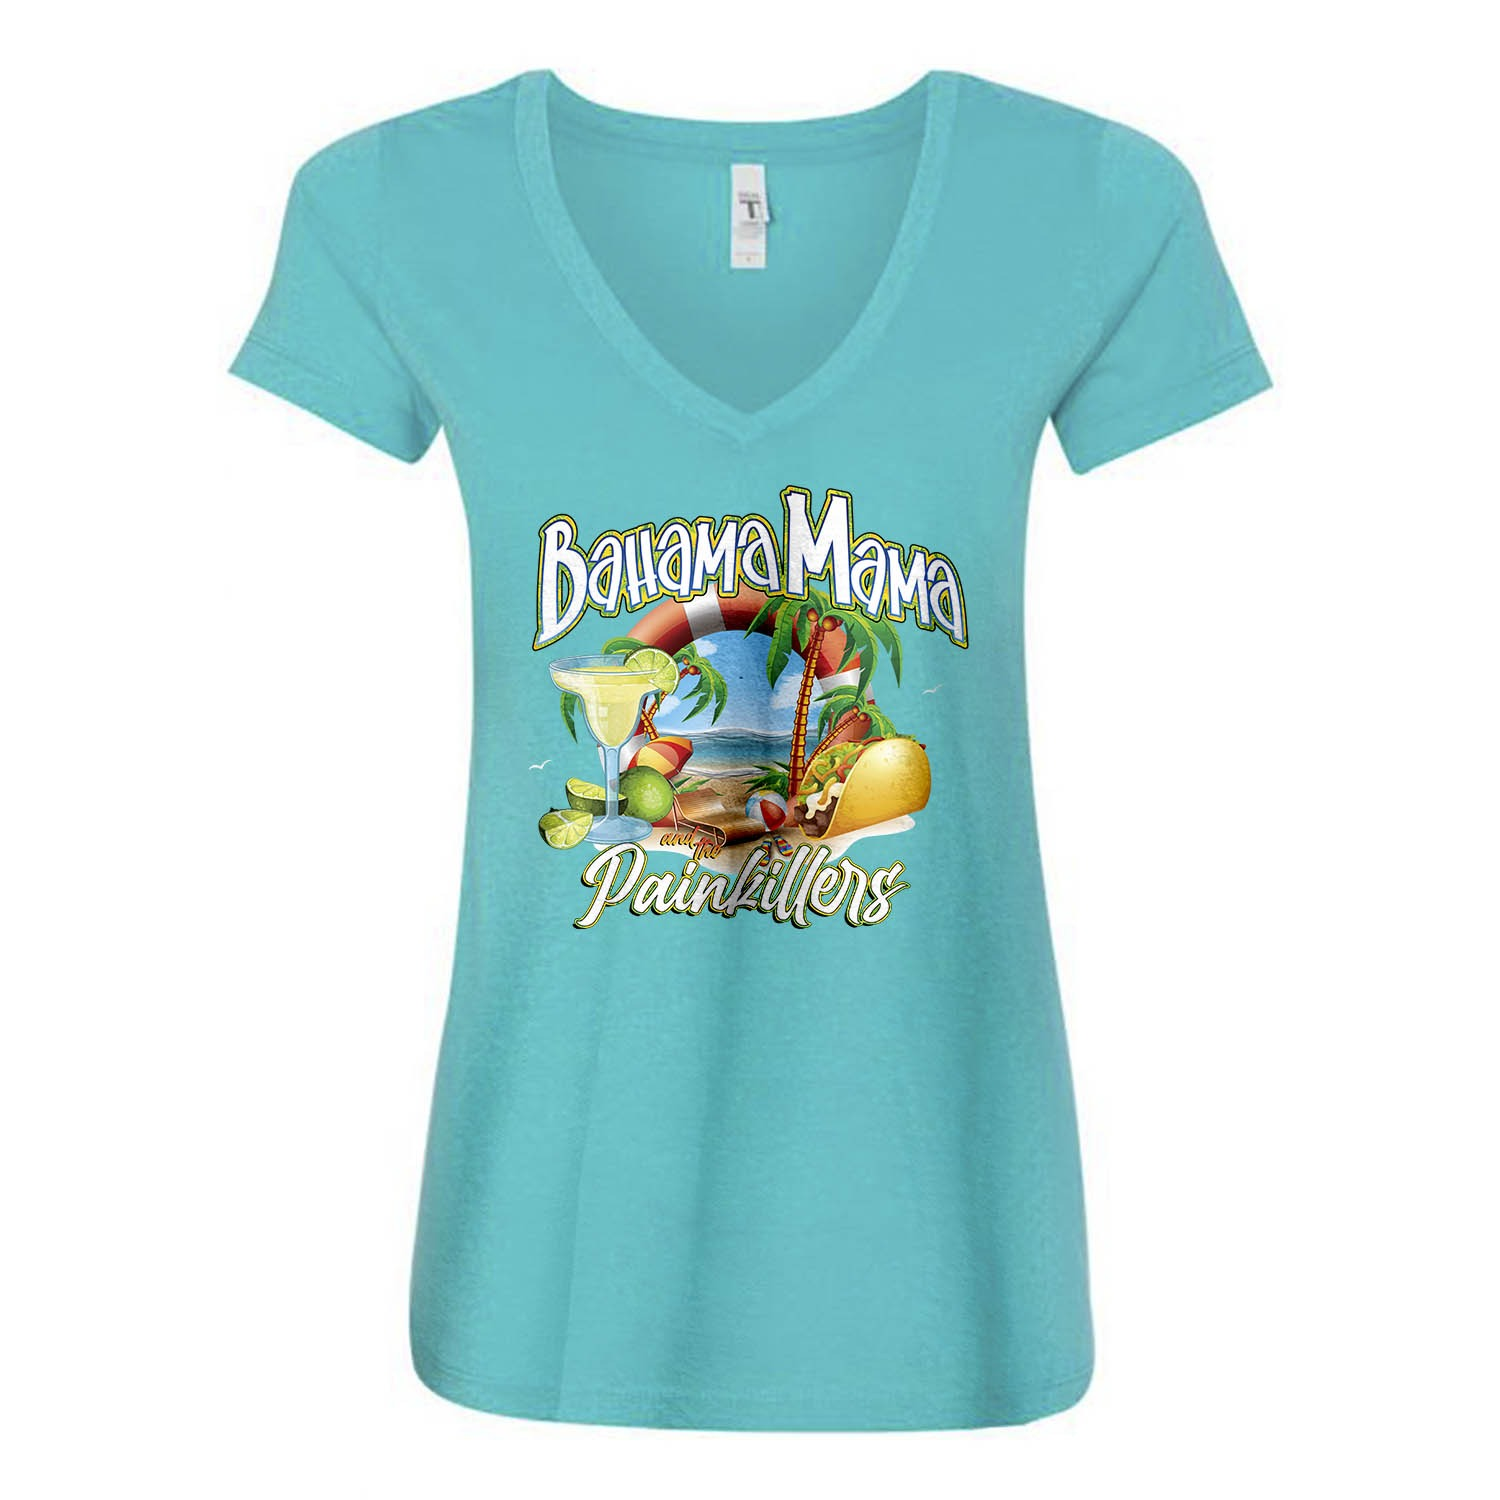 Bahama Mama and the Painkillers Double T Womens Vneck Fitted Tee, The Troprock Shop